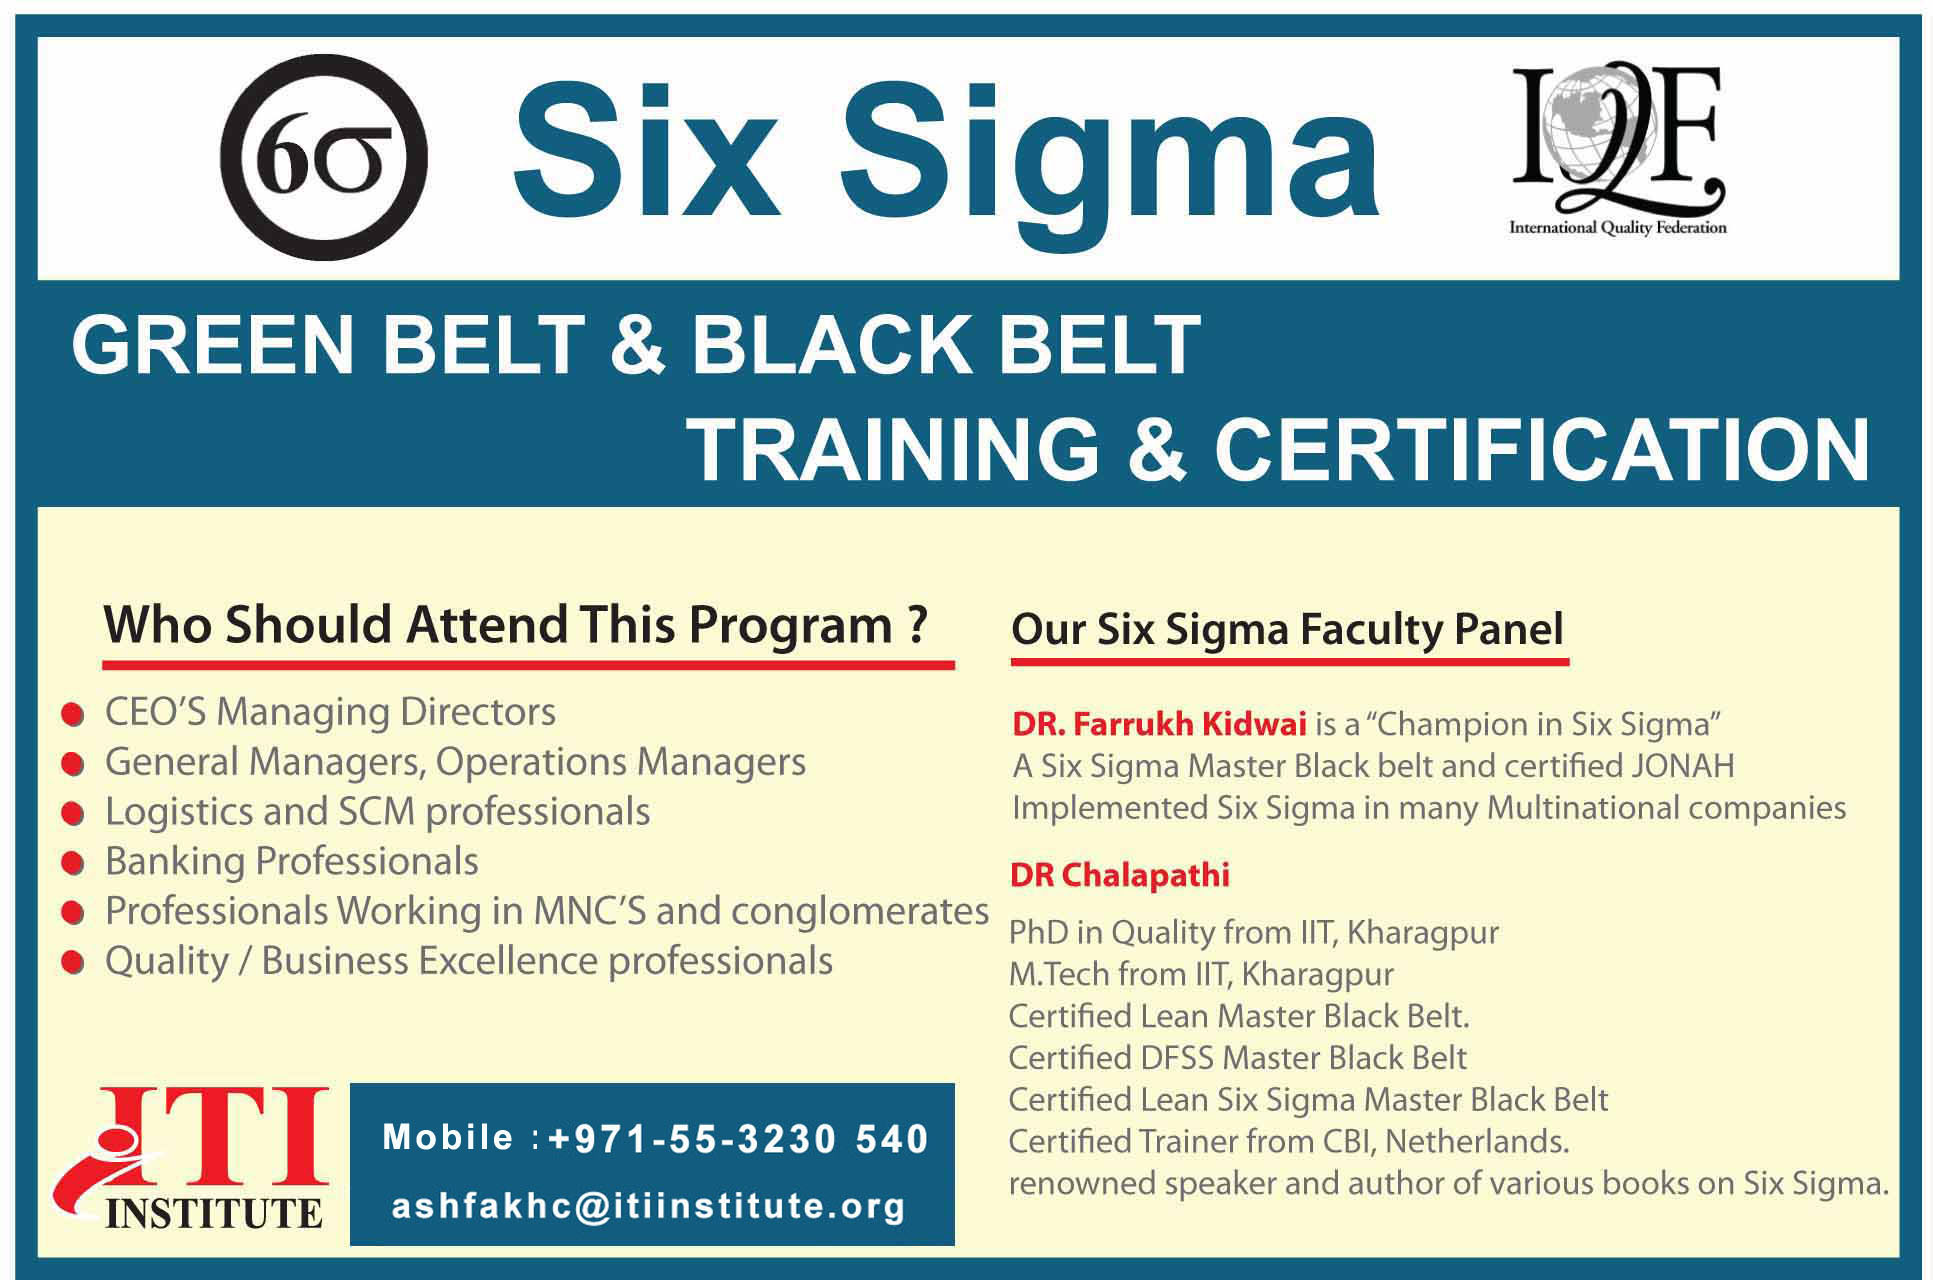 Six Sigma Green belt/ Black belt training in Dubai